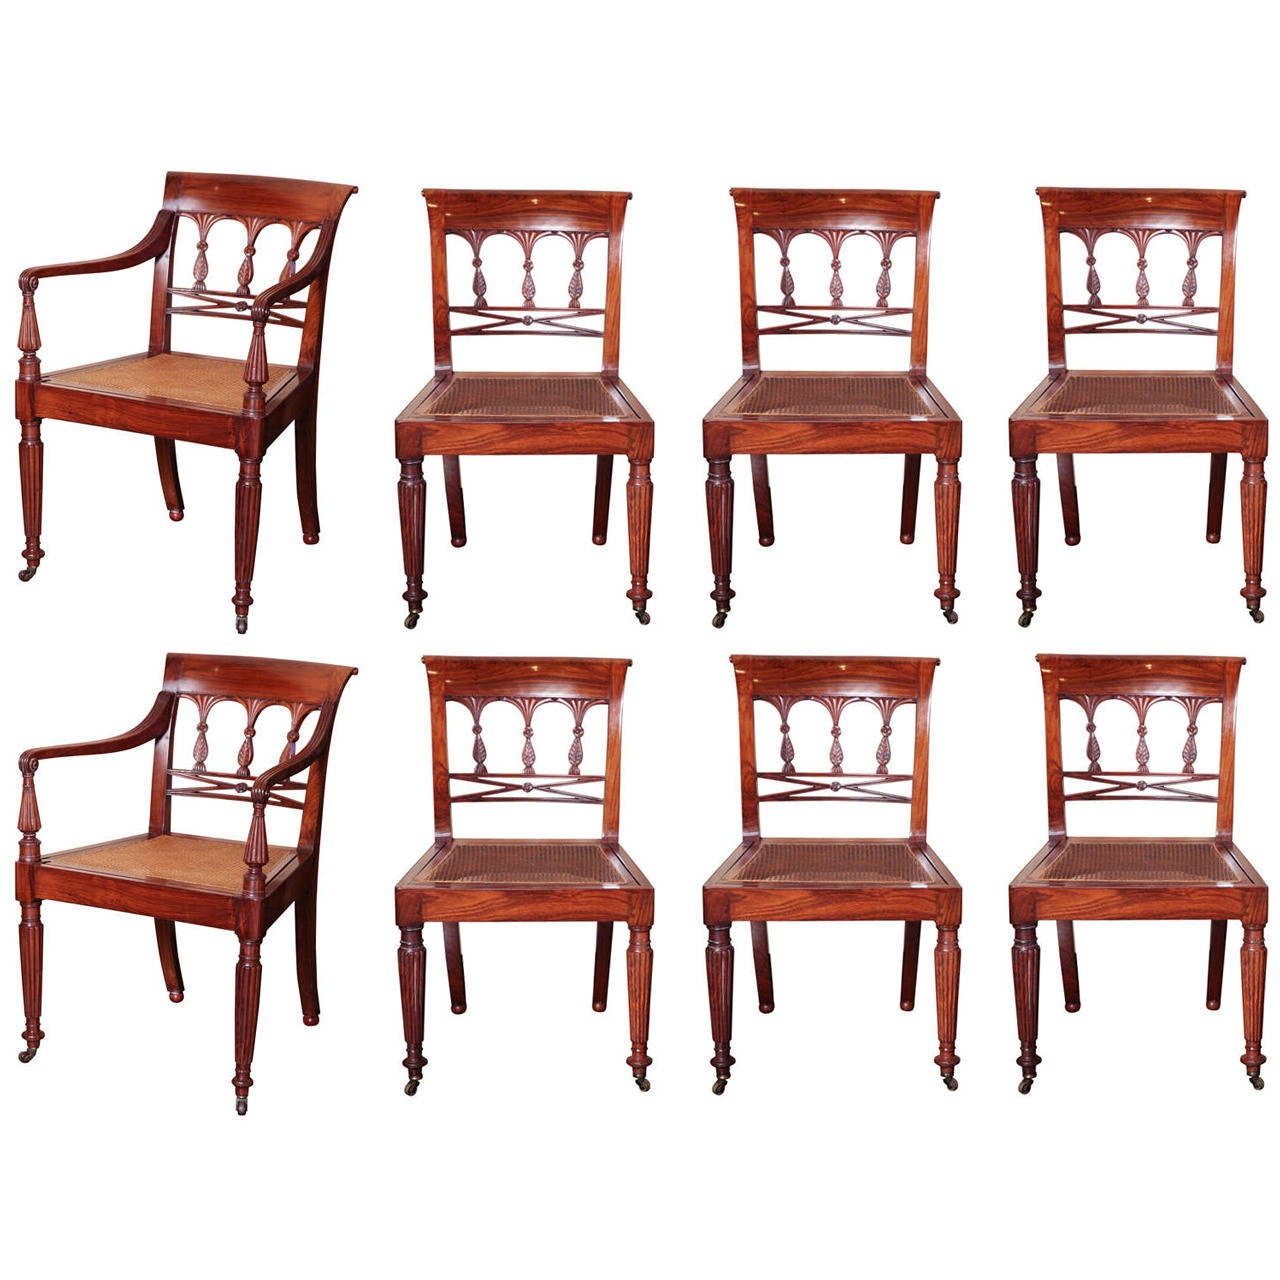 A 19th century Set of Six Side Plus Two Armchairs